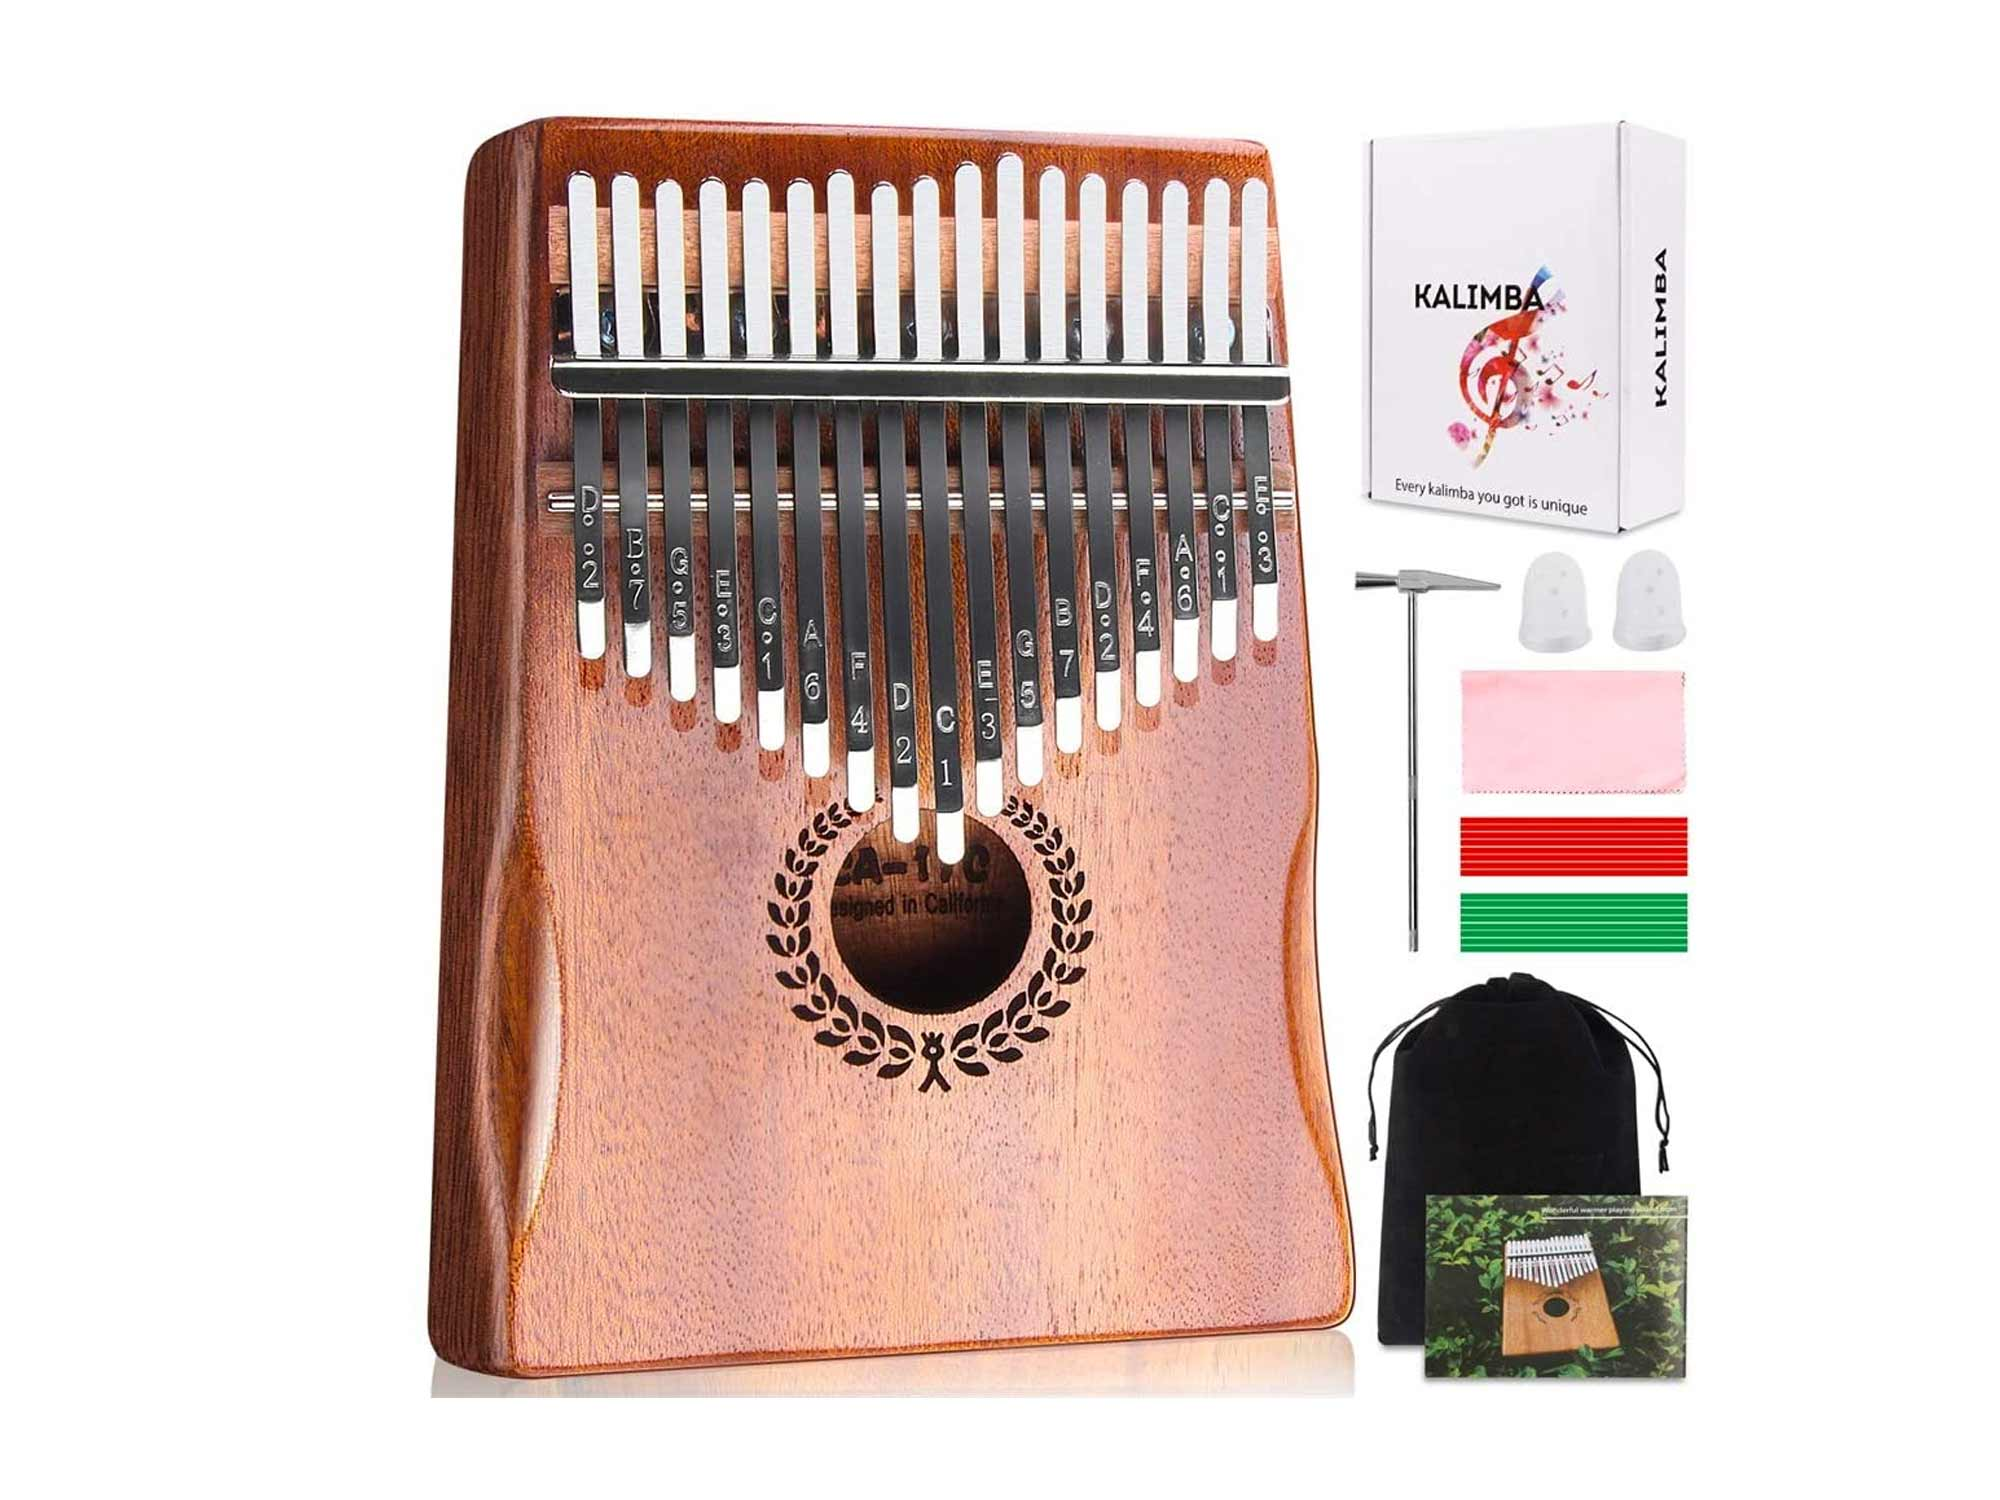 Kalimba 17 Keys Thumb Piano, Easy to Learn Portable Musical Instrument Gifts for Kids Adult Beginners with Tuning Hammer and Study Instruction